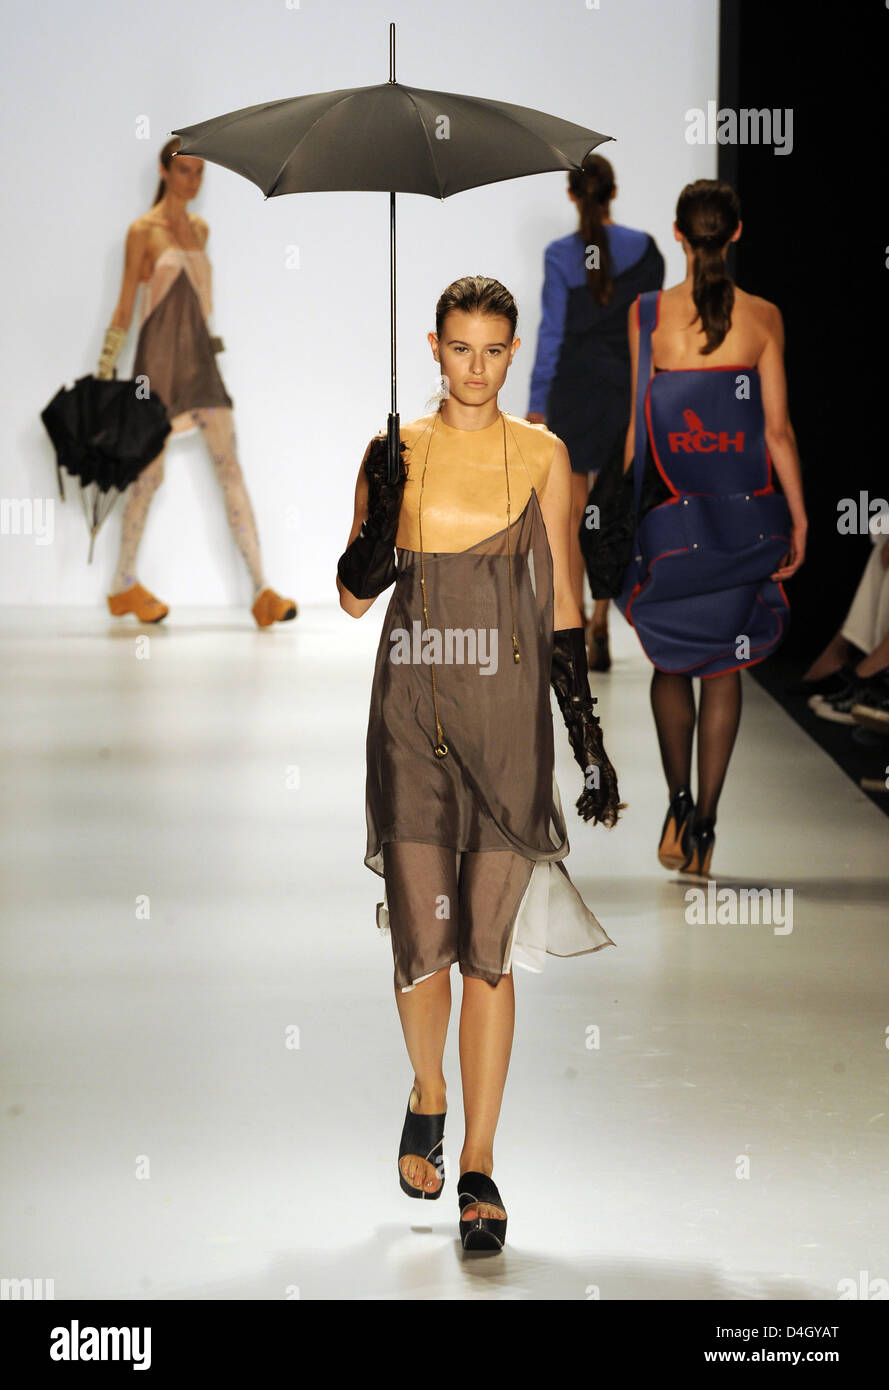 Models Present Fashion Of The Berlin University Of The Arts Udk Stock Photo Alamy